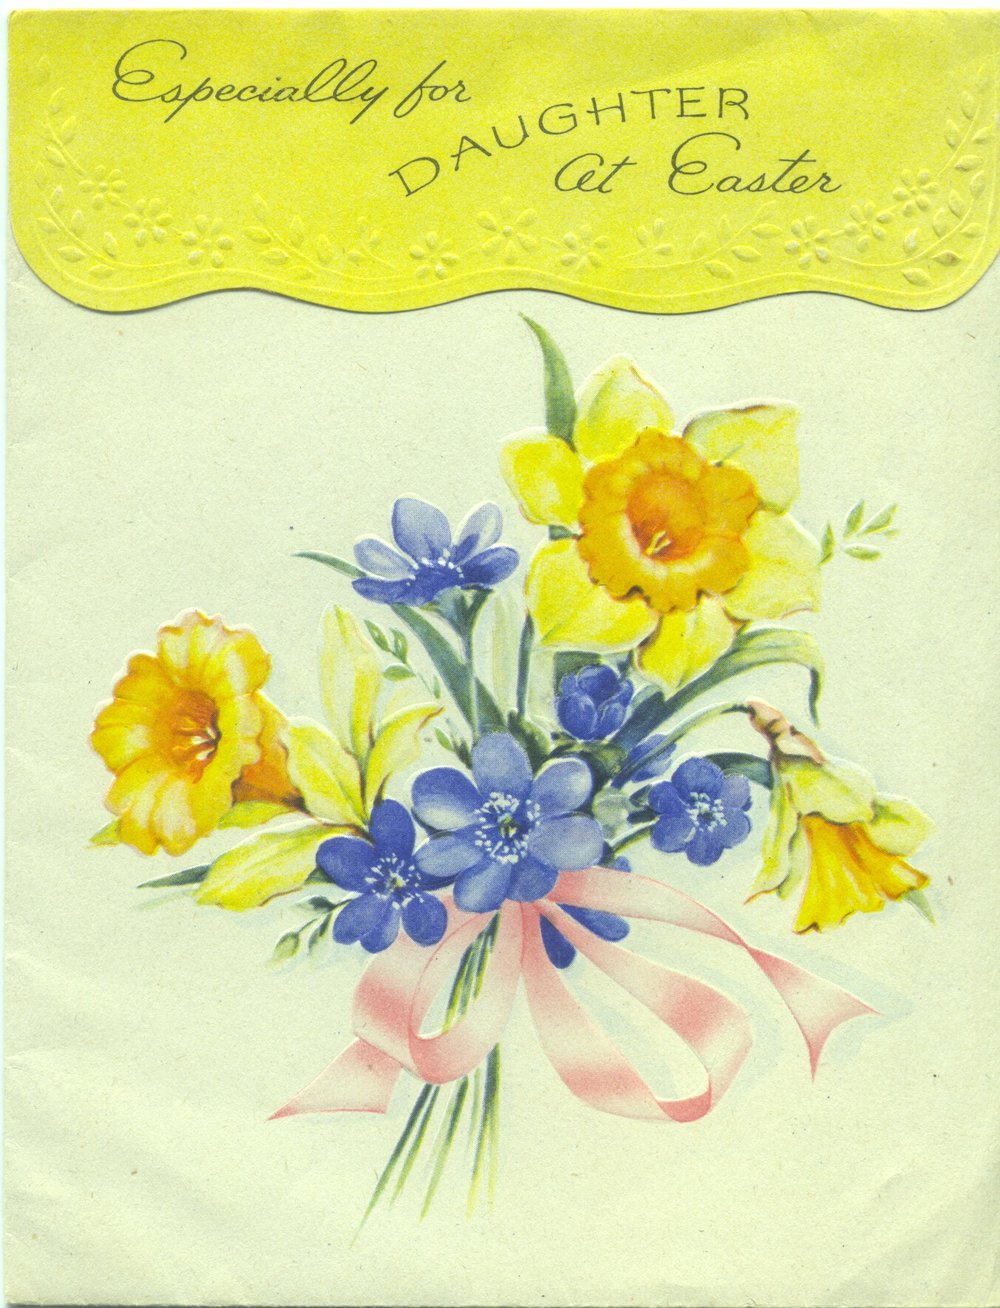 Vintage 1942 Golden Bell Greeting Card from my maternal grandparents to their daughter and new son-law (my parents)